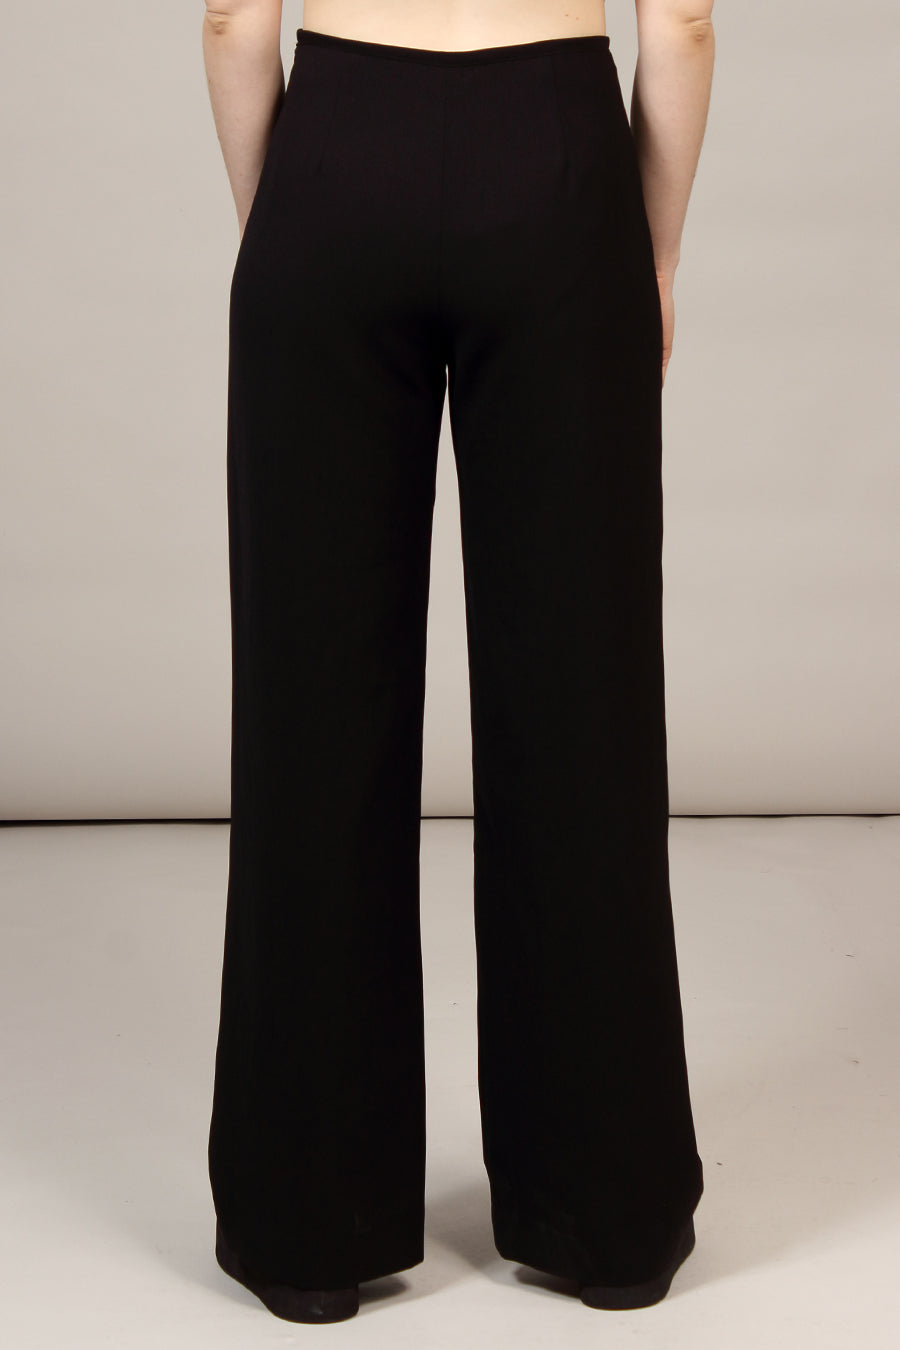 Liza Crepe Lined Coby Pant